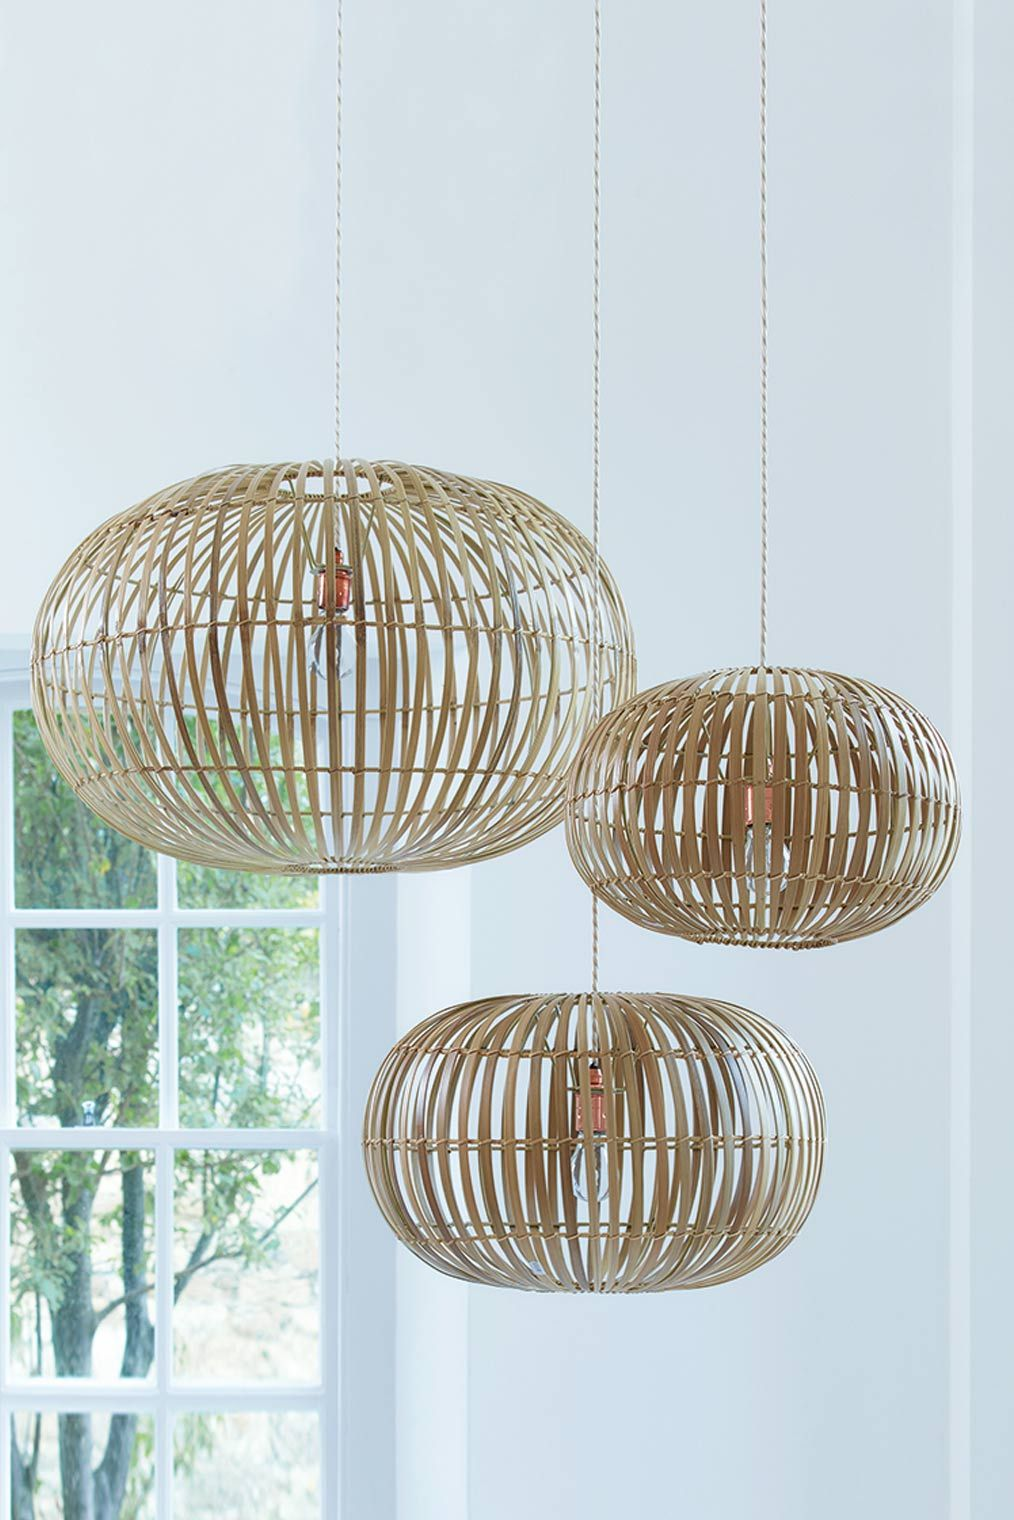 Statement lighting Trending 18 Affordable Ways To Make Any Room Look Expensive Statement Lighting Delicate Glassware And Carefully Chosen Furnishings Heres How To Make Your Home Pinterest 18 Affordable Ways To Make Any Room Look Expensive Statement